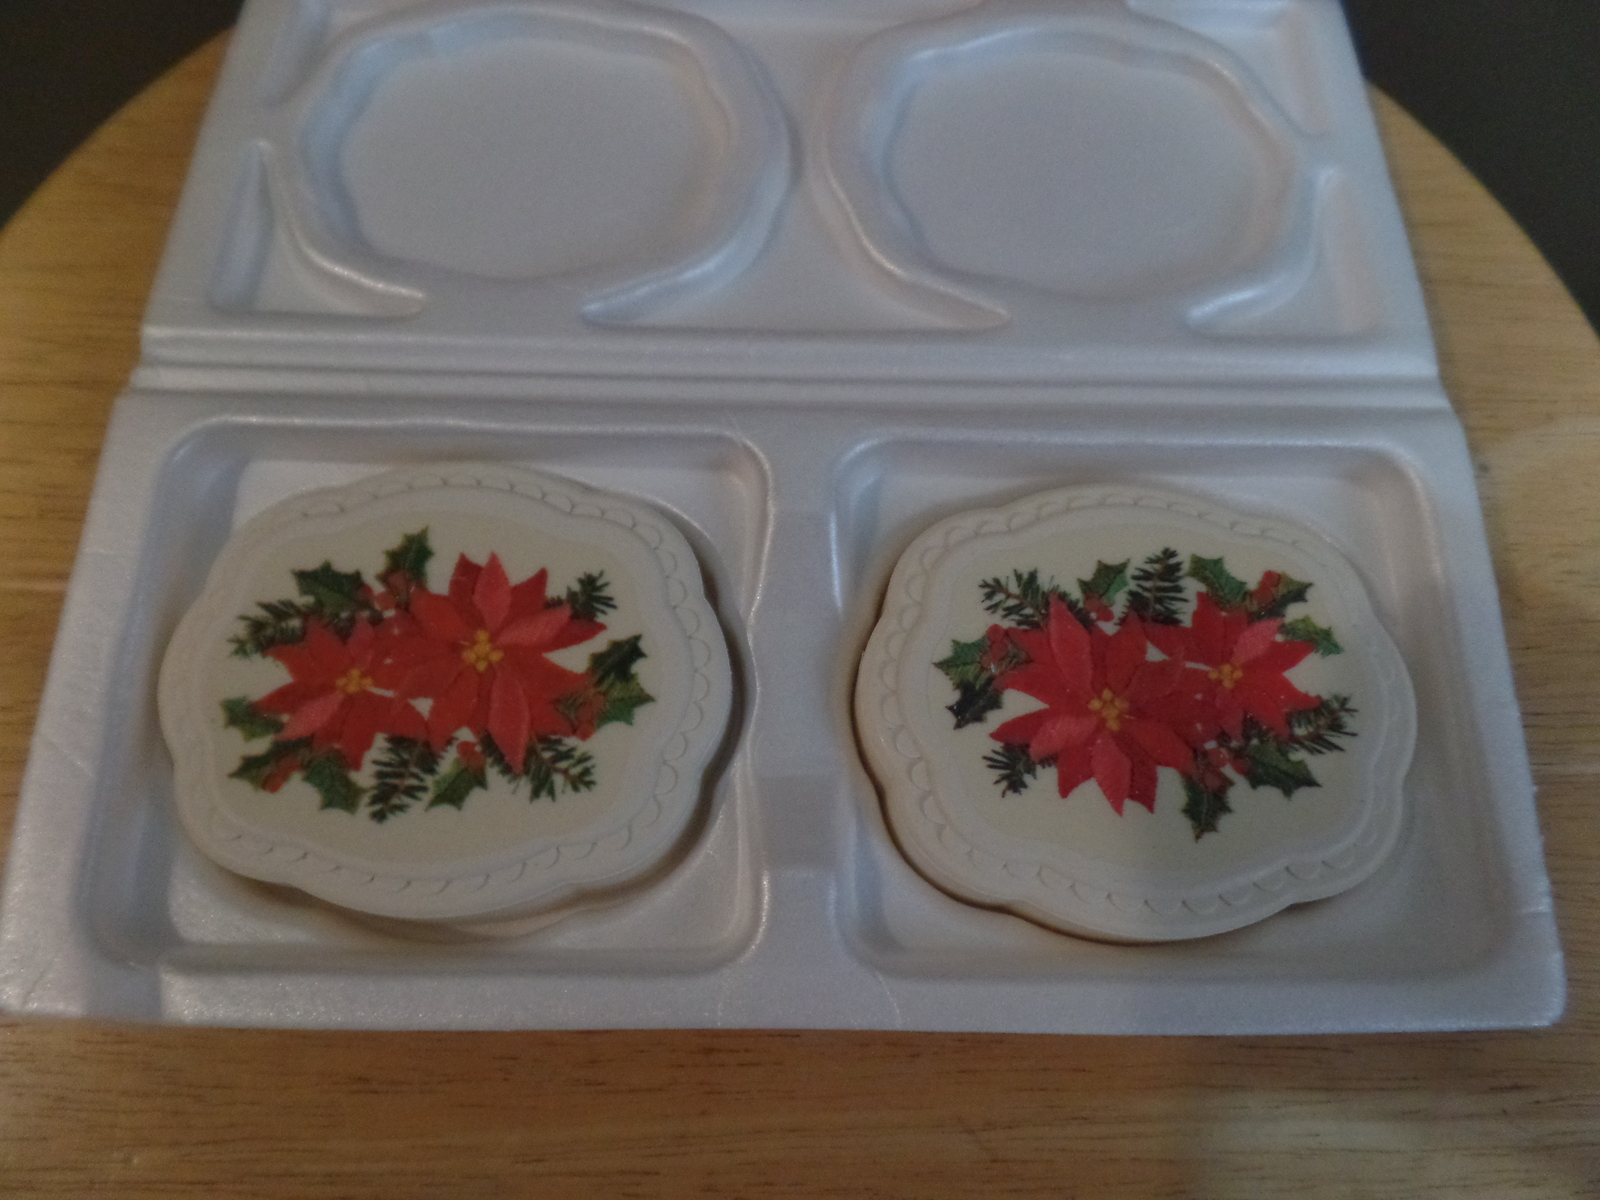 Vintage Avon POINSETTIA 2 Fragrance Decaled SOAP Bars in Original BOX